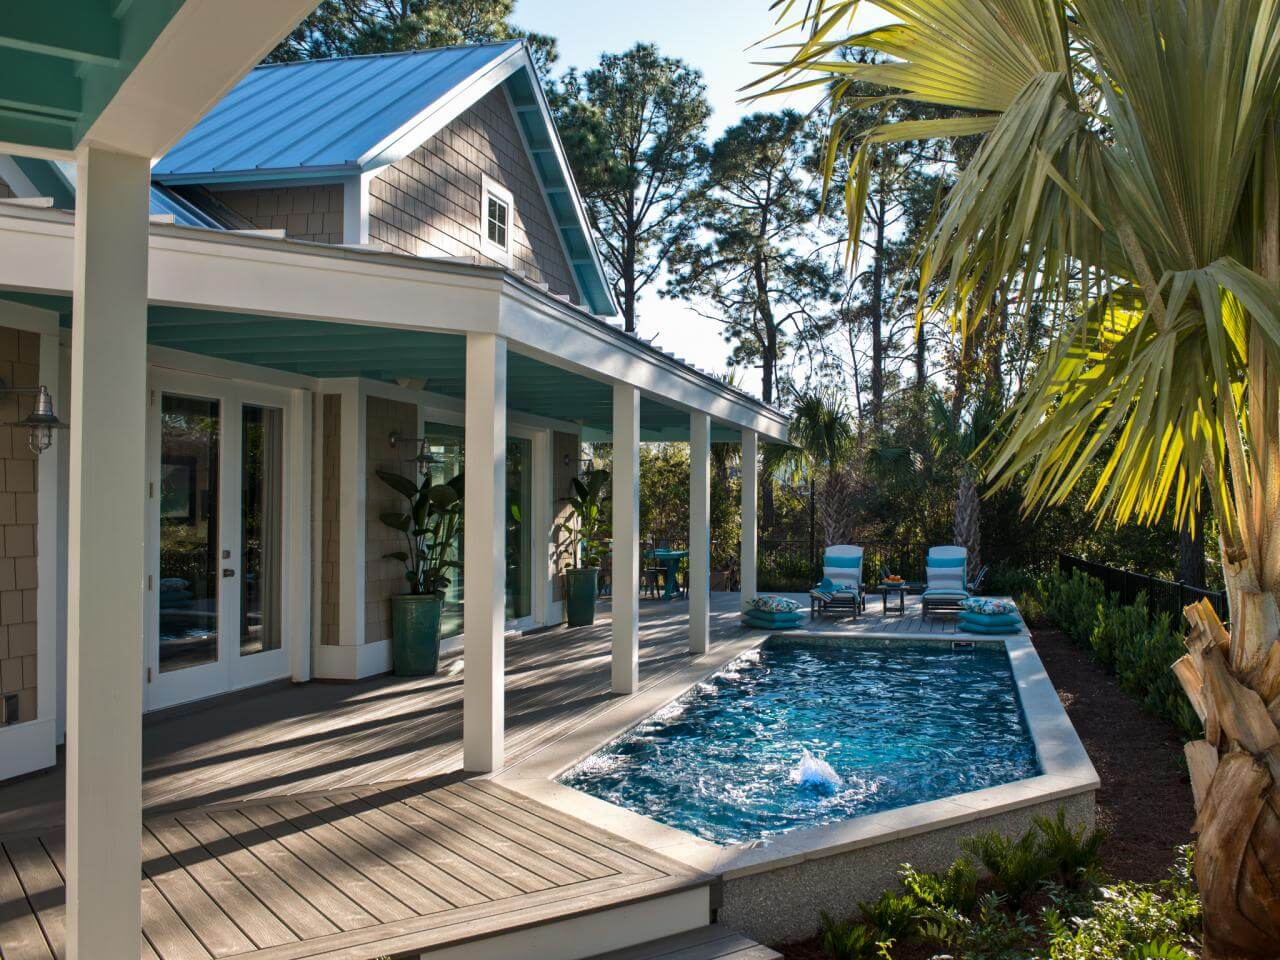 Go for a relaxing dip in your backyard.